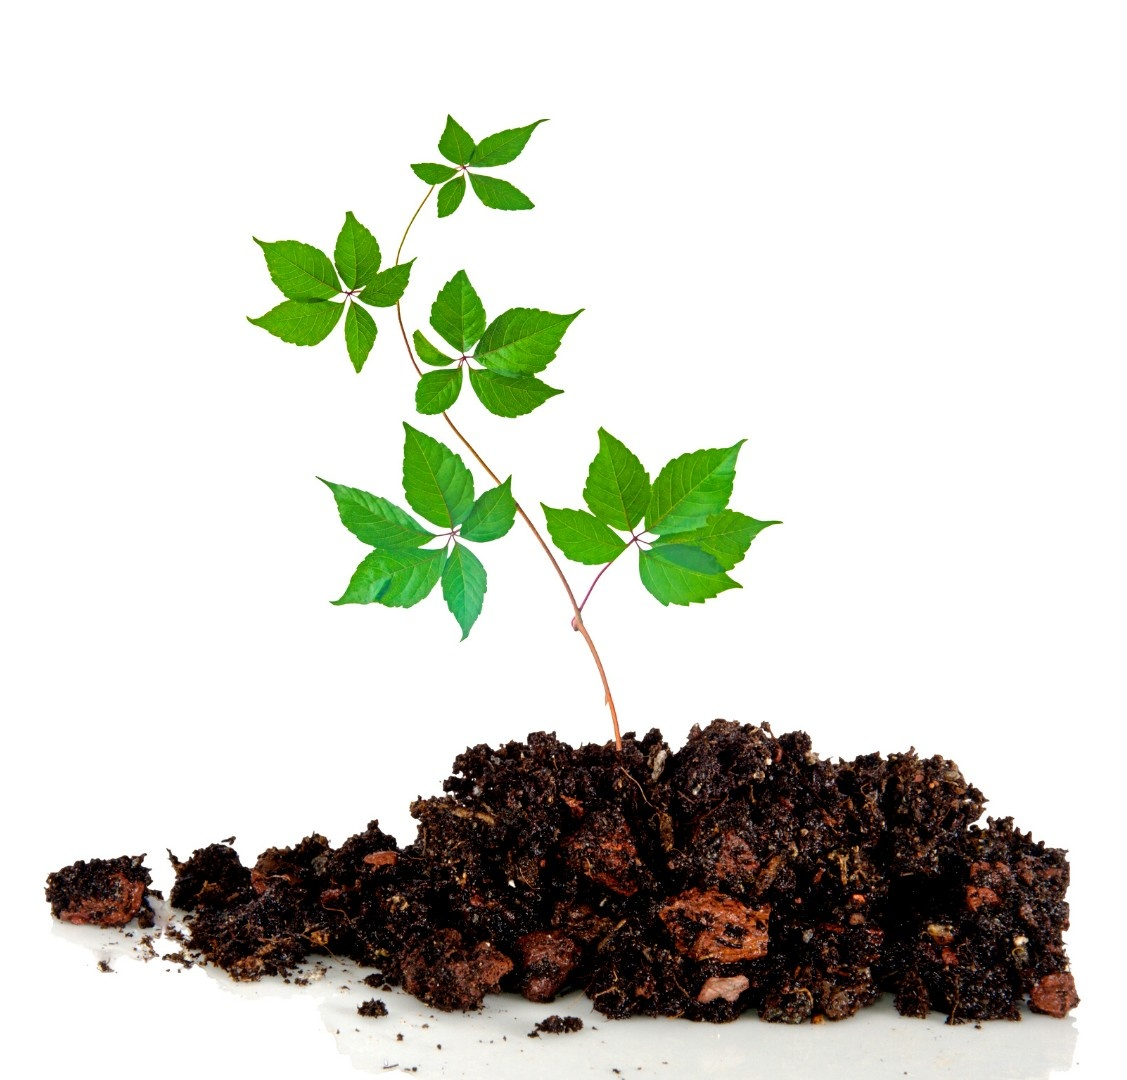 a plant in dirt on a white background